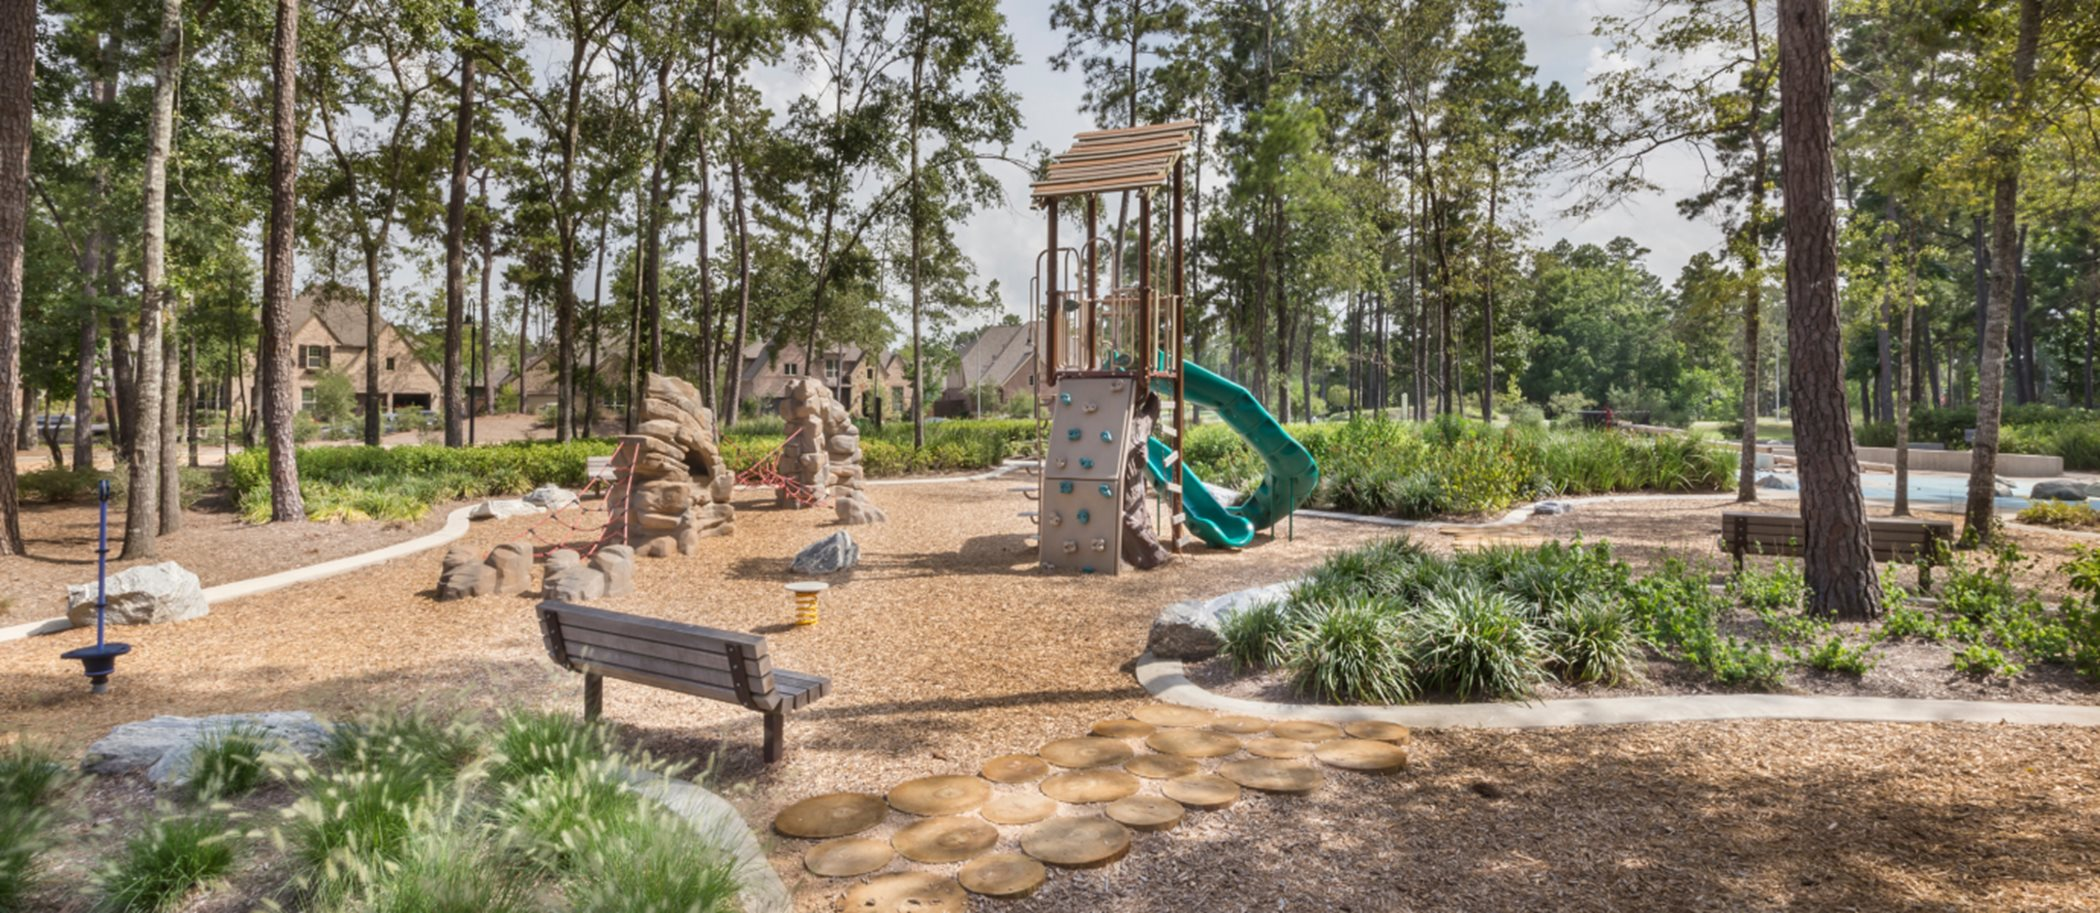 The Groves Playground